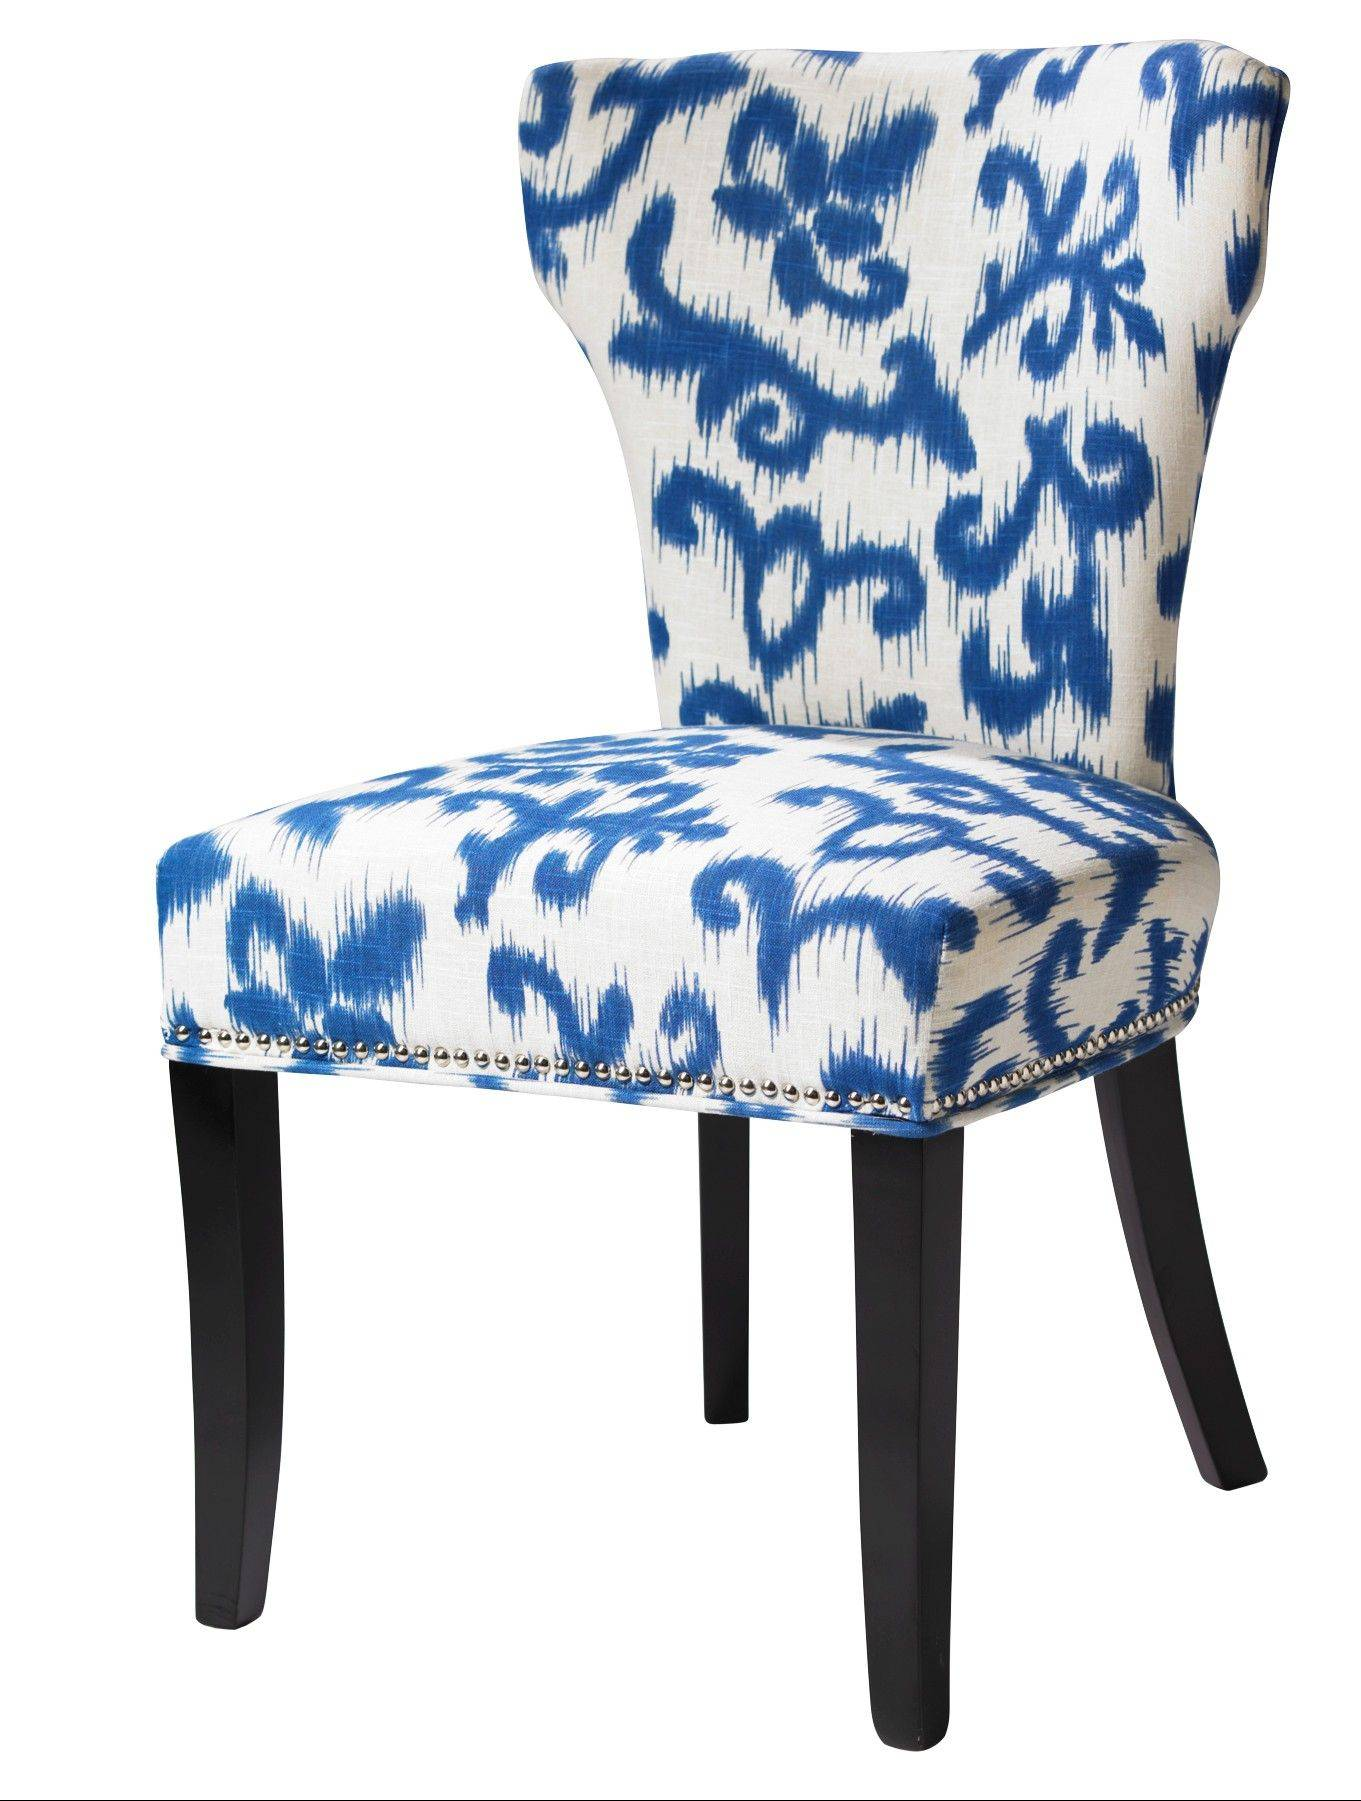 An upholstered chair in a blue and white print from HomeGoods. Blue and white prints are a big trend this spring.